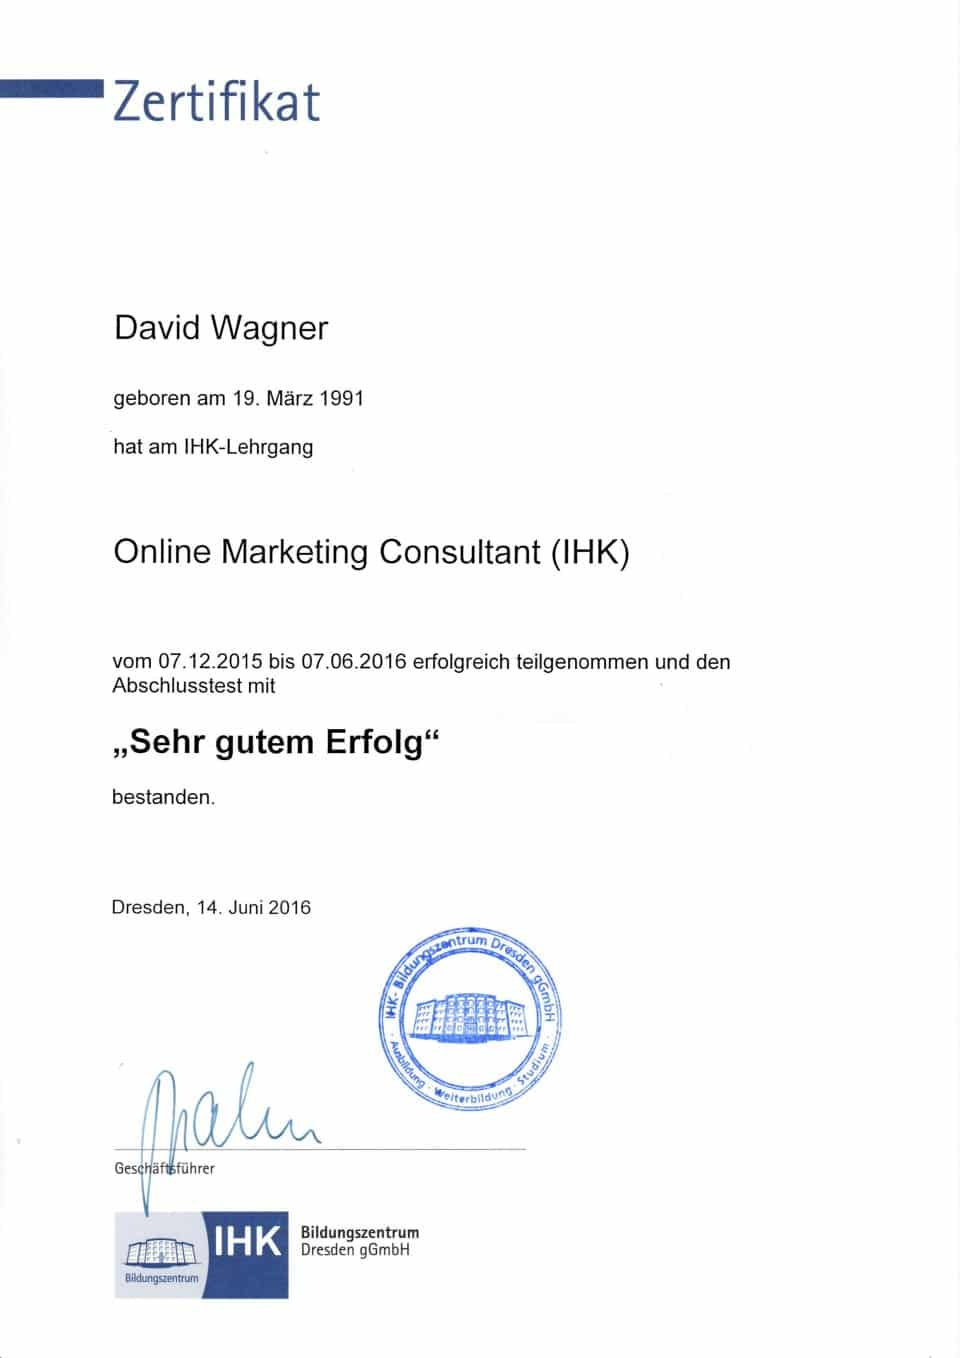 David Wagner - Online Marketing Consultant - IHK Zertifikat